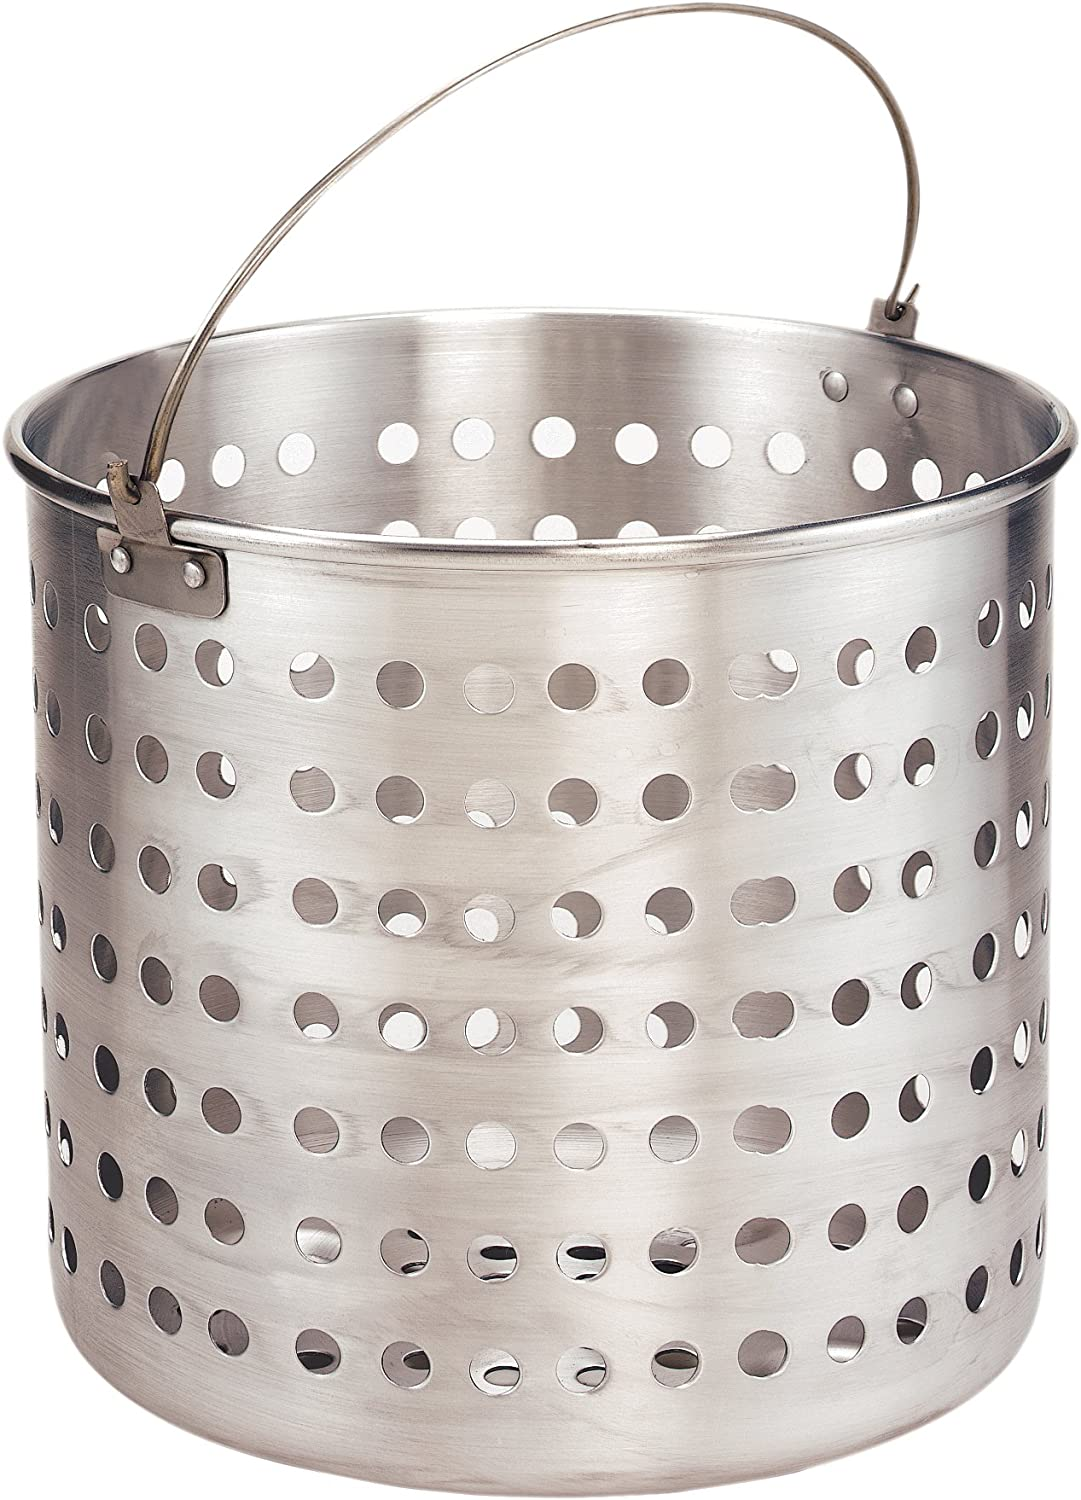 Crestware 30-Quart Steamer Basket